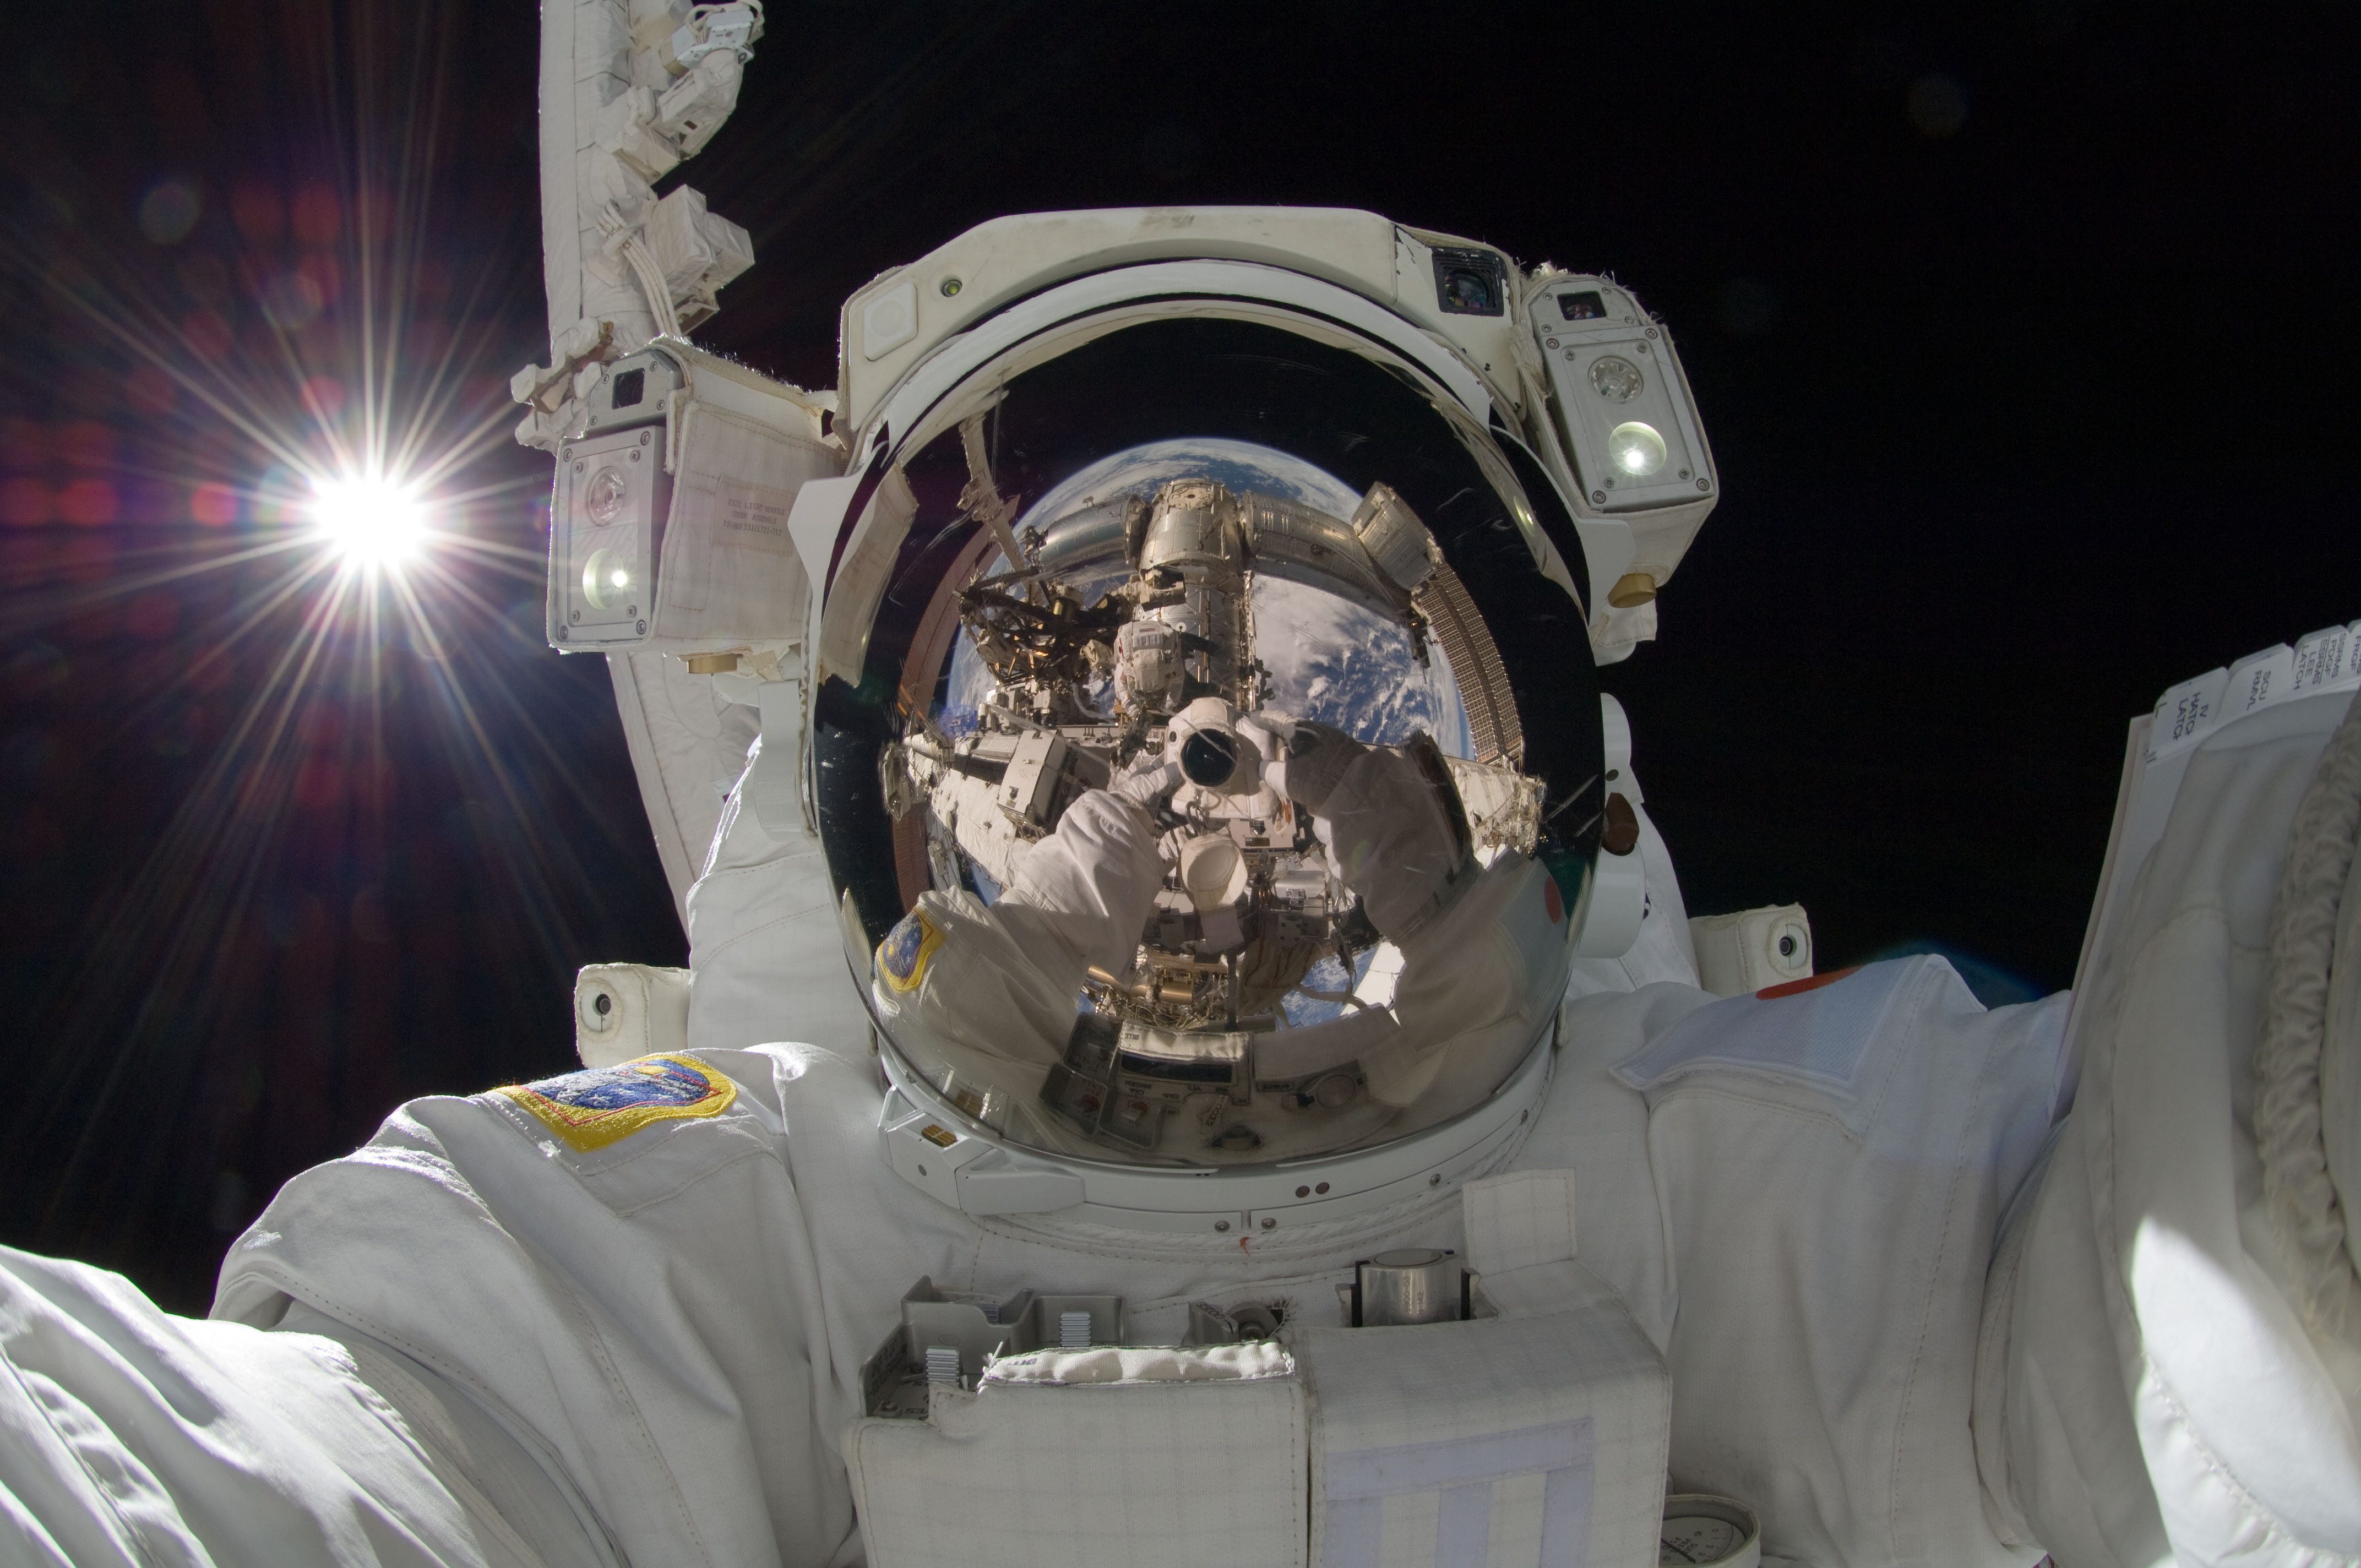 Reflection of ISS Astronaut in a Helmet